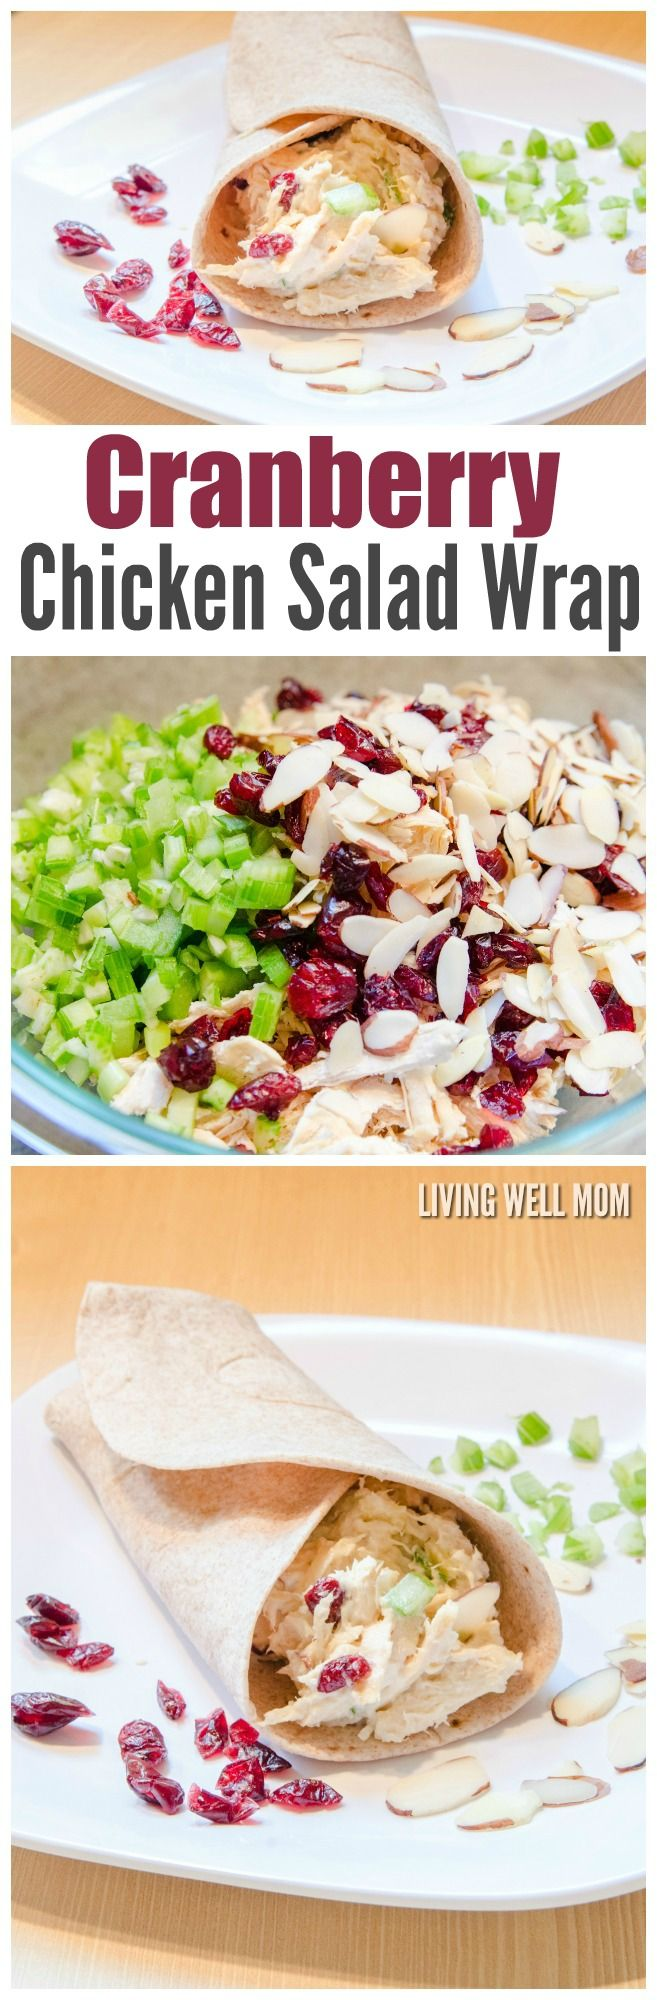 This Cranberry Chicken Salad Wrap Recipe Has Chicken, Slivered Almonds,  Celery, And Dried